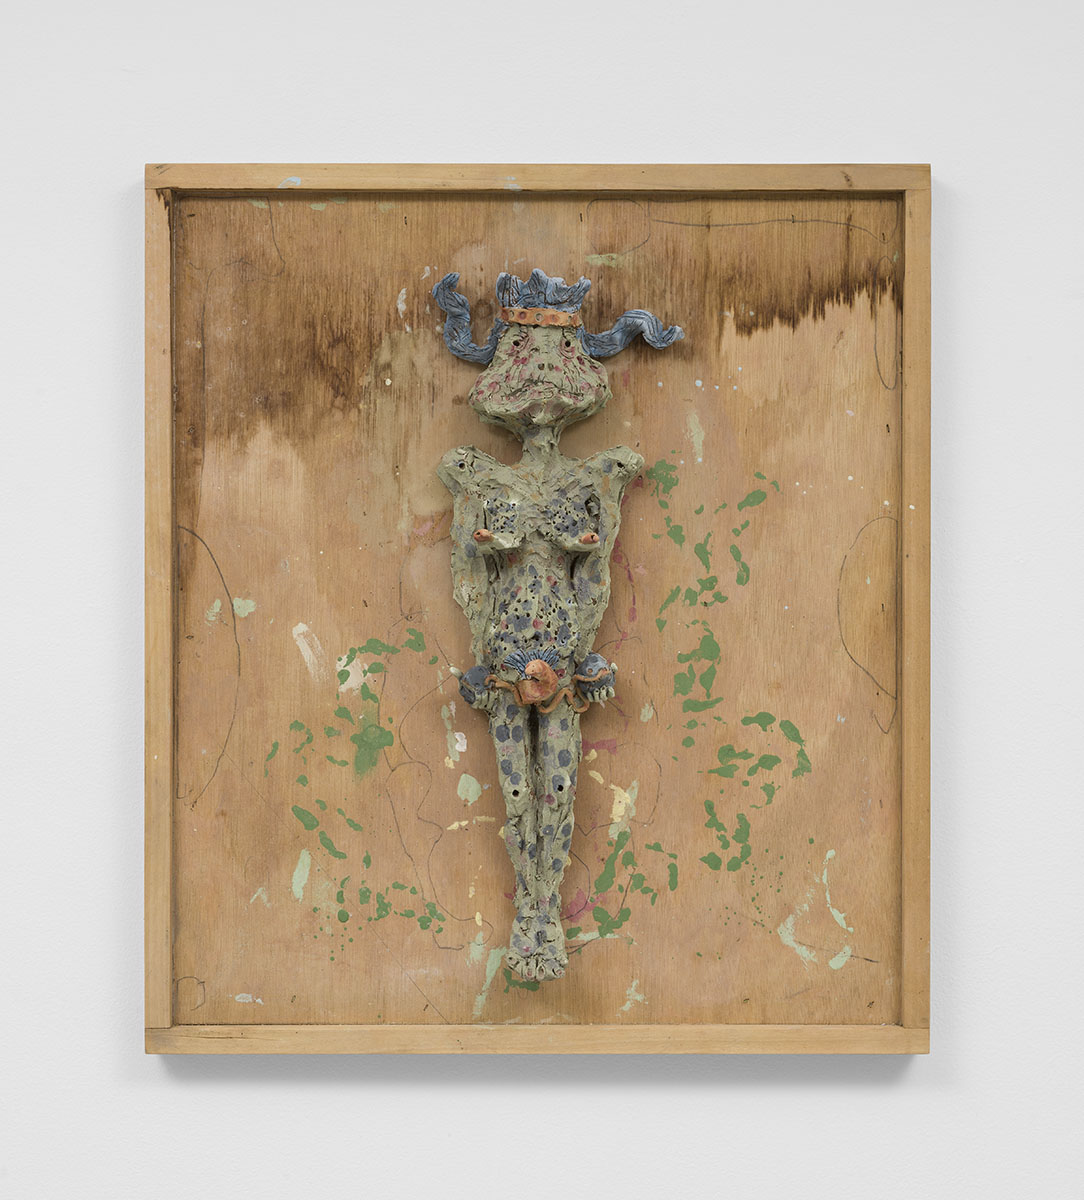 Richard Hawkins - Syphilitic Goddess, 2015, glazed ceramic in artist's frame, 25 ¾ x 22 ¾ x 4 ⅜ inches